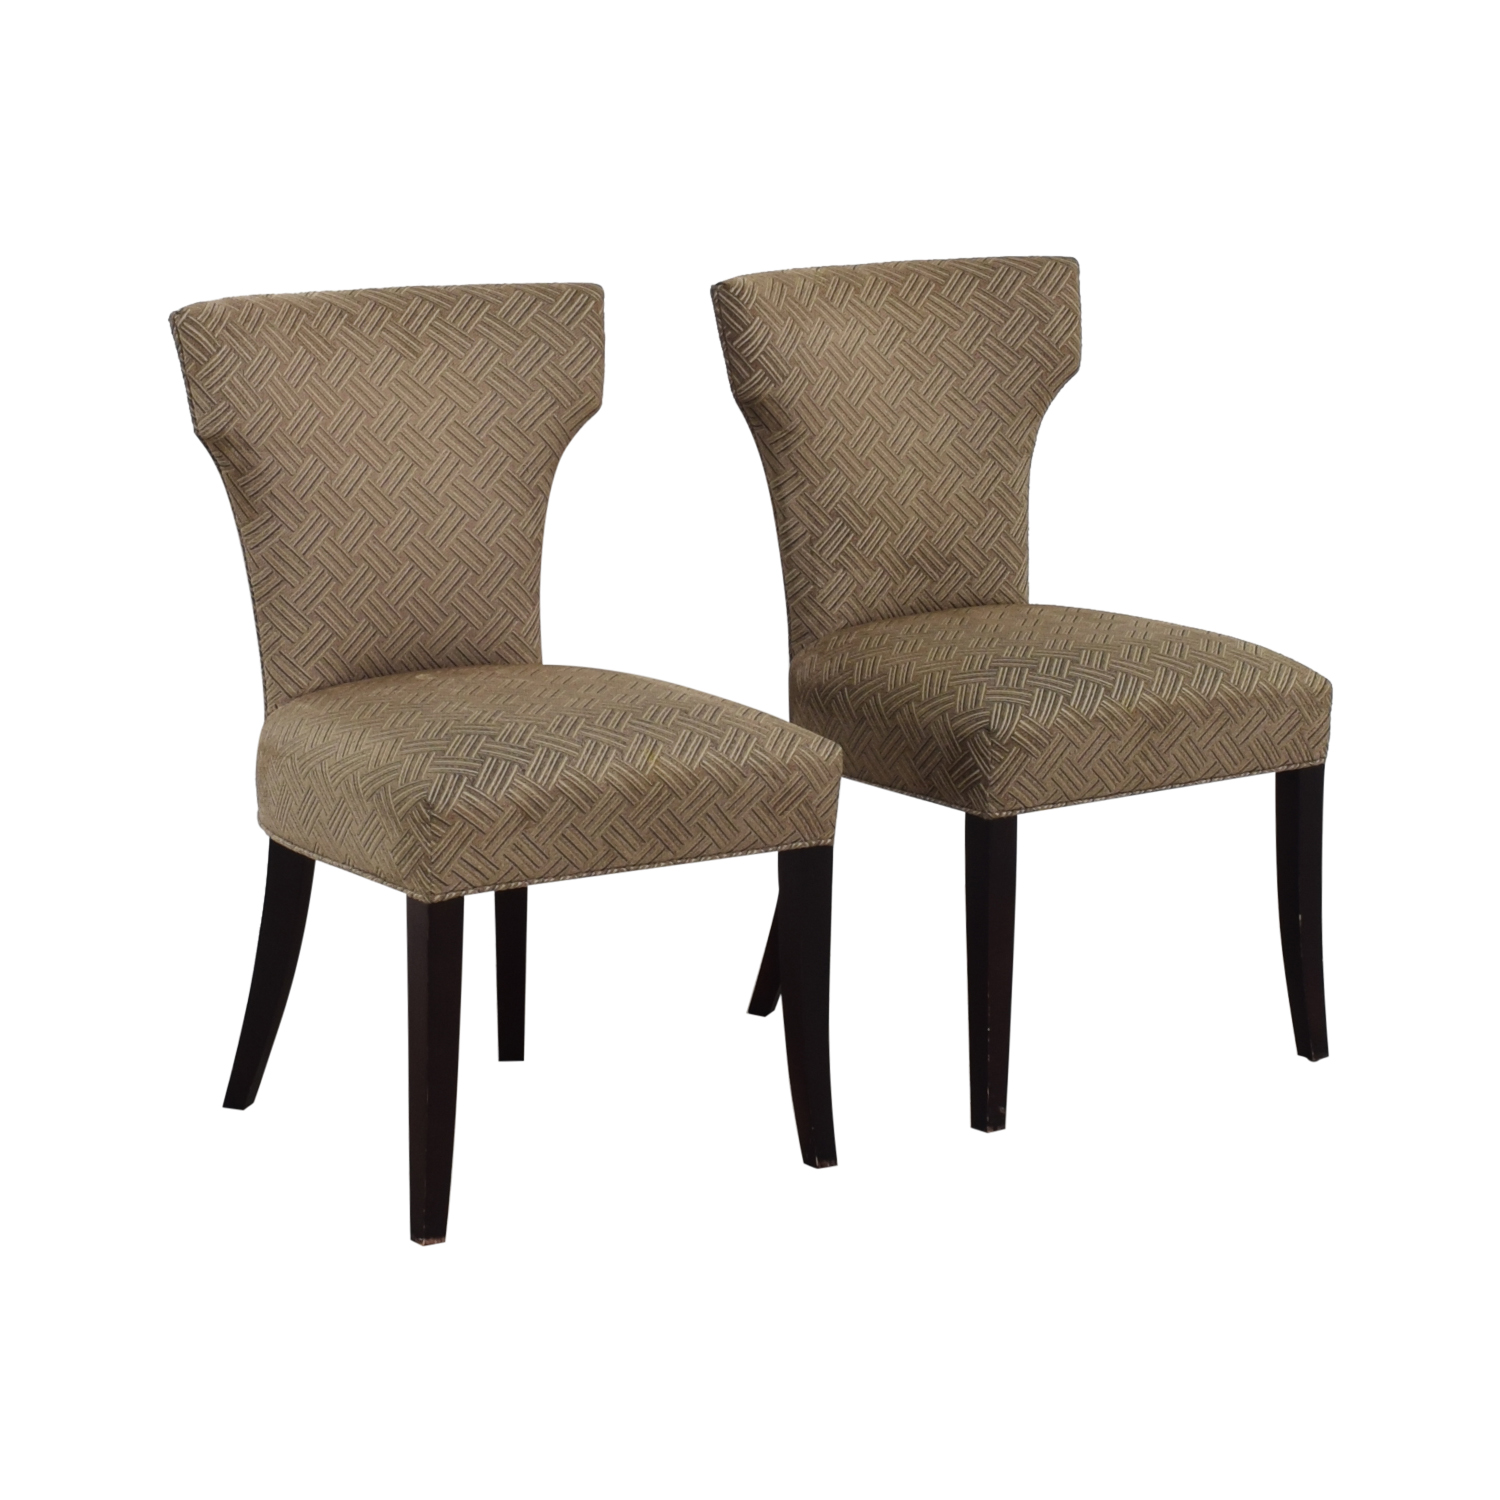 Crate And Barrel Dining Room Chairs: Crate & Barrel Crate & Barrel Sasha Upholstered